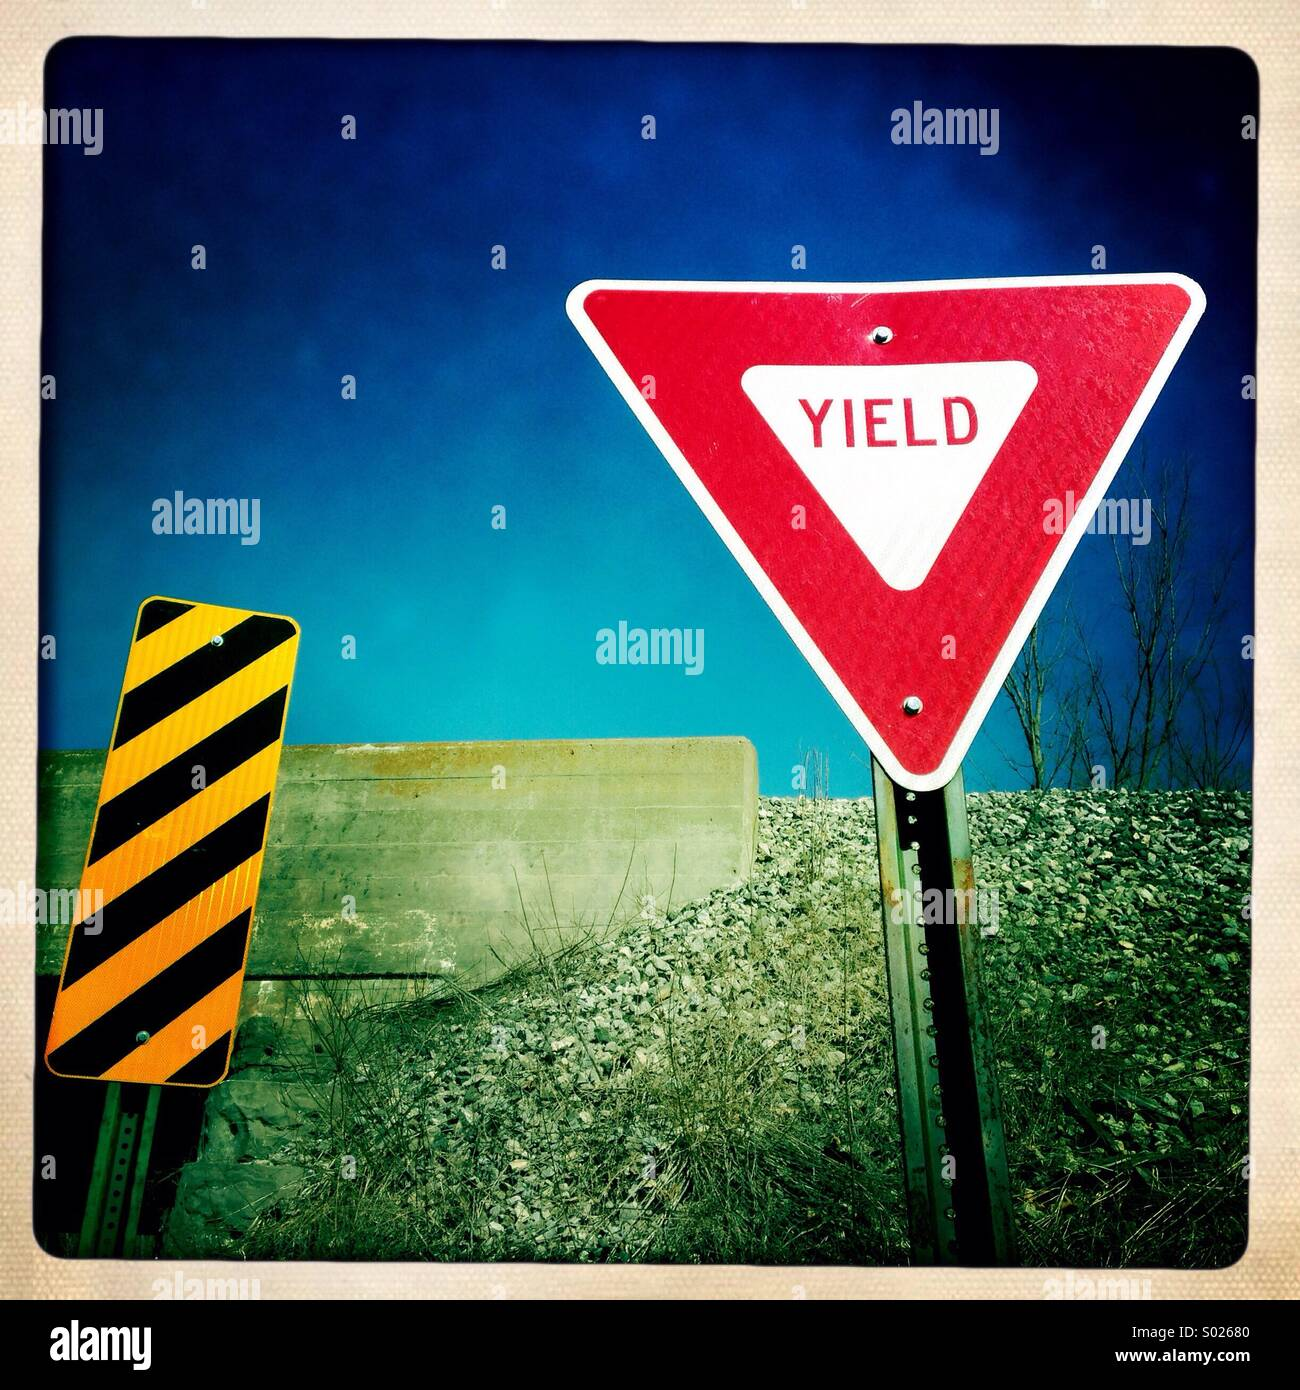 Yield sign against a blue sky. - Stock Image